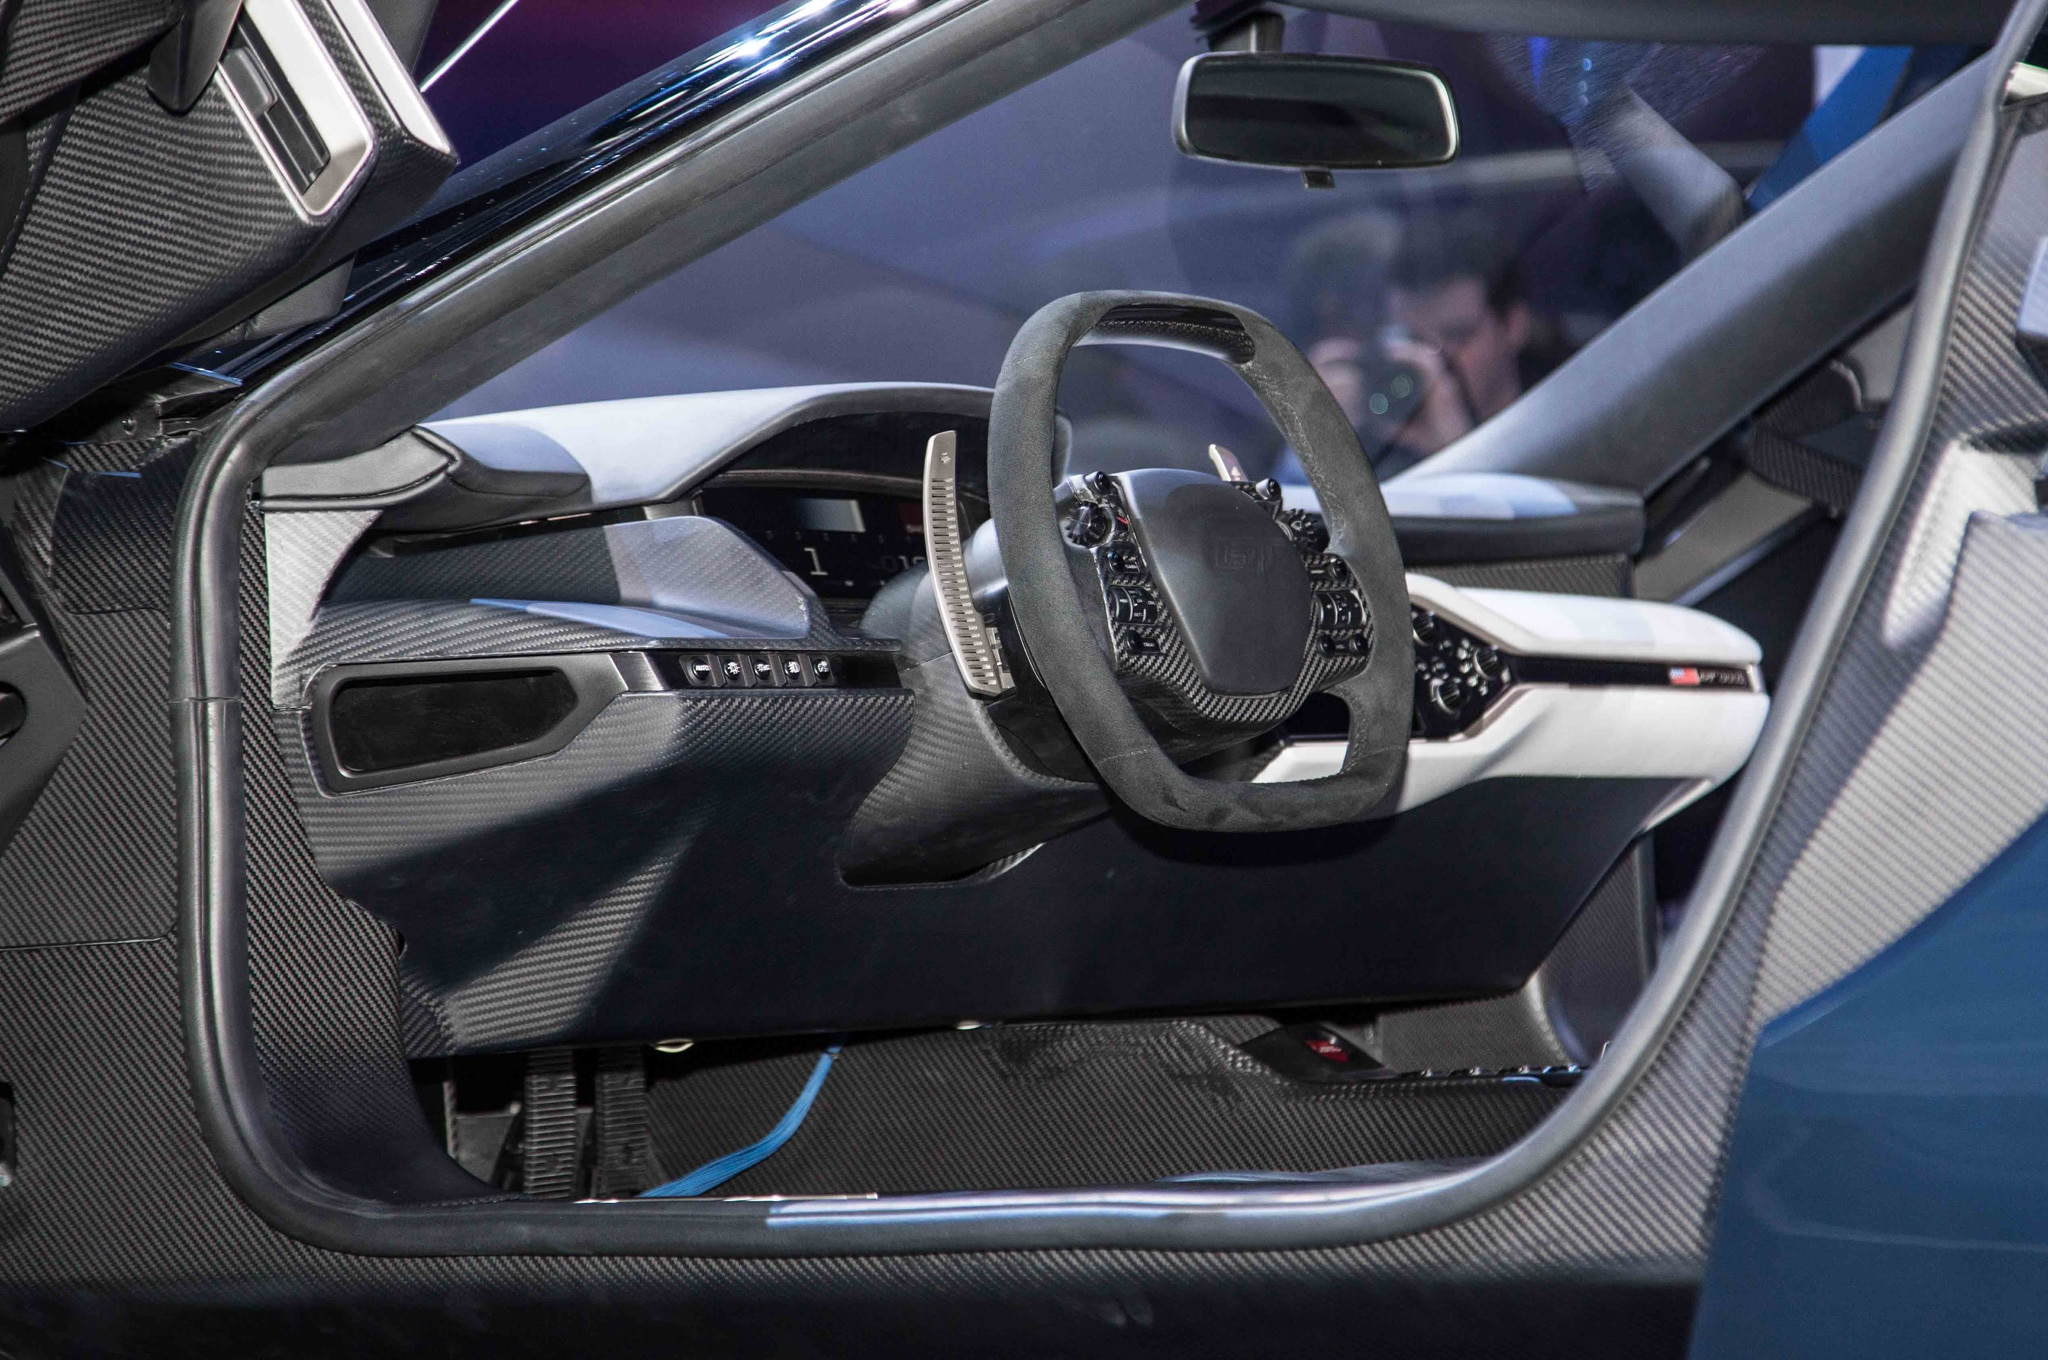 ford gt at 2015 detroit auto show interior view - 2015 Ford Gt Auto Show